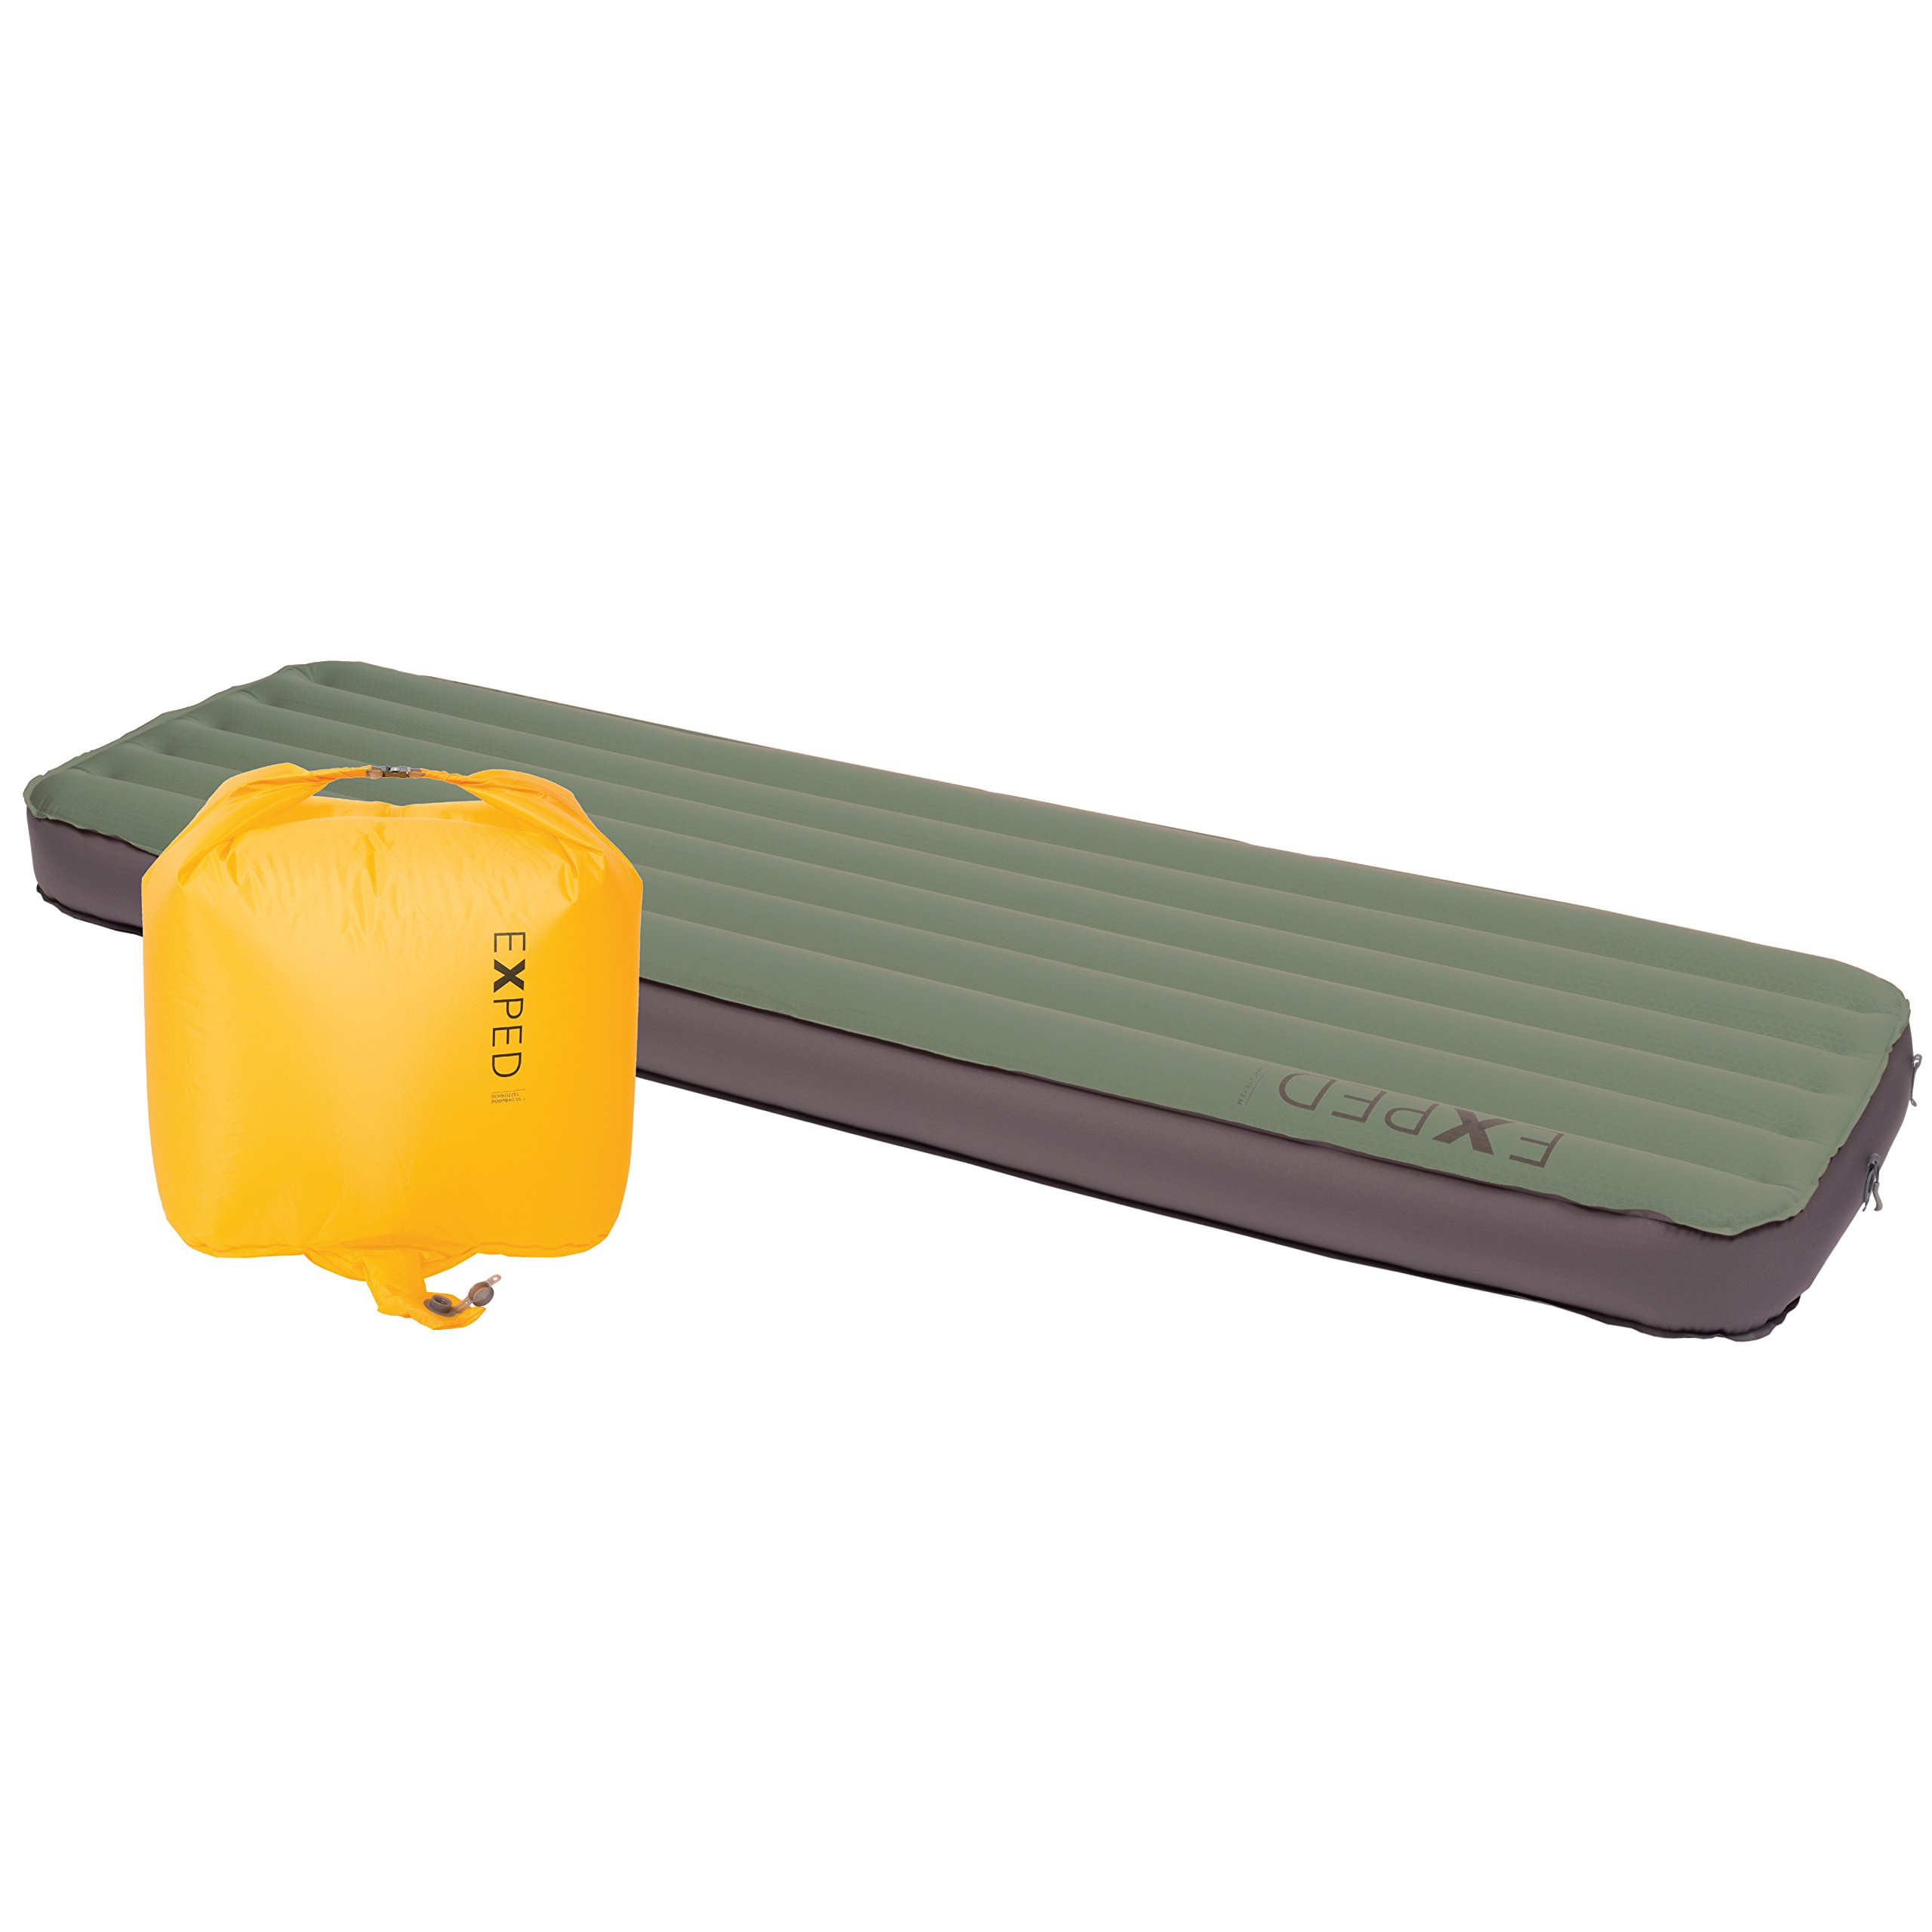 Exped MegaMat Lite 12 Sleeping Pad, Green, Medium by Exped